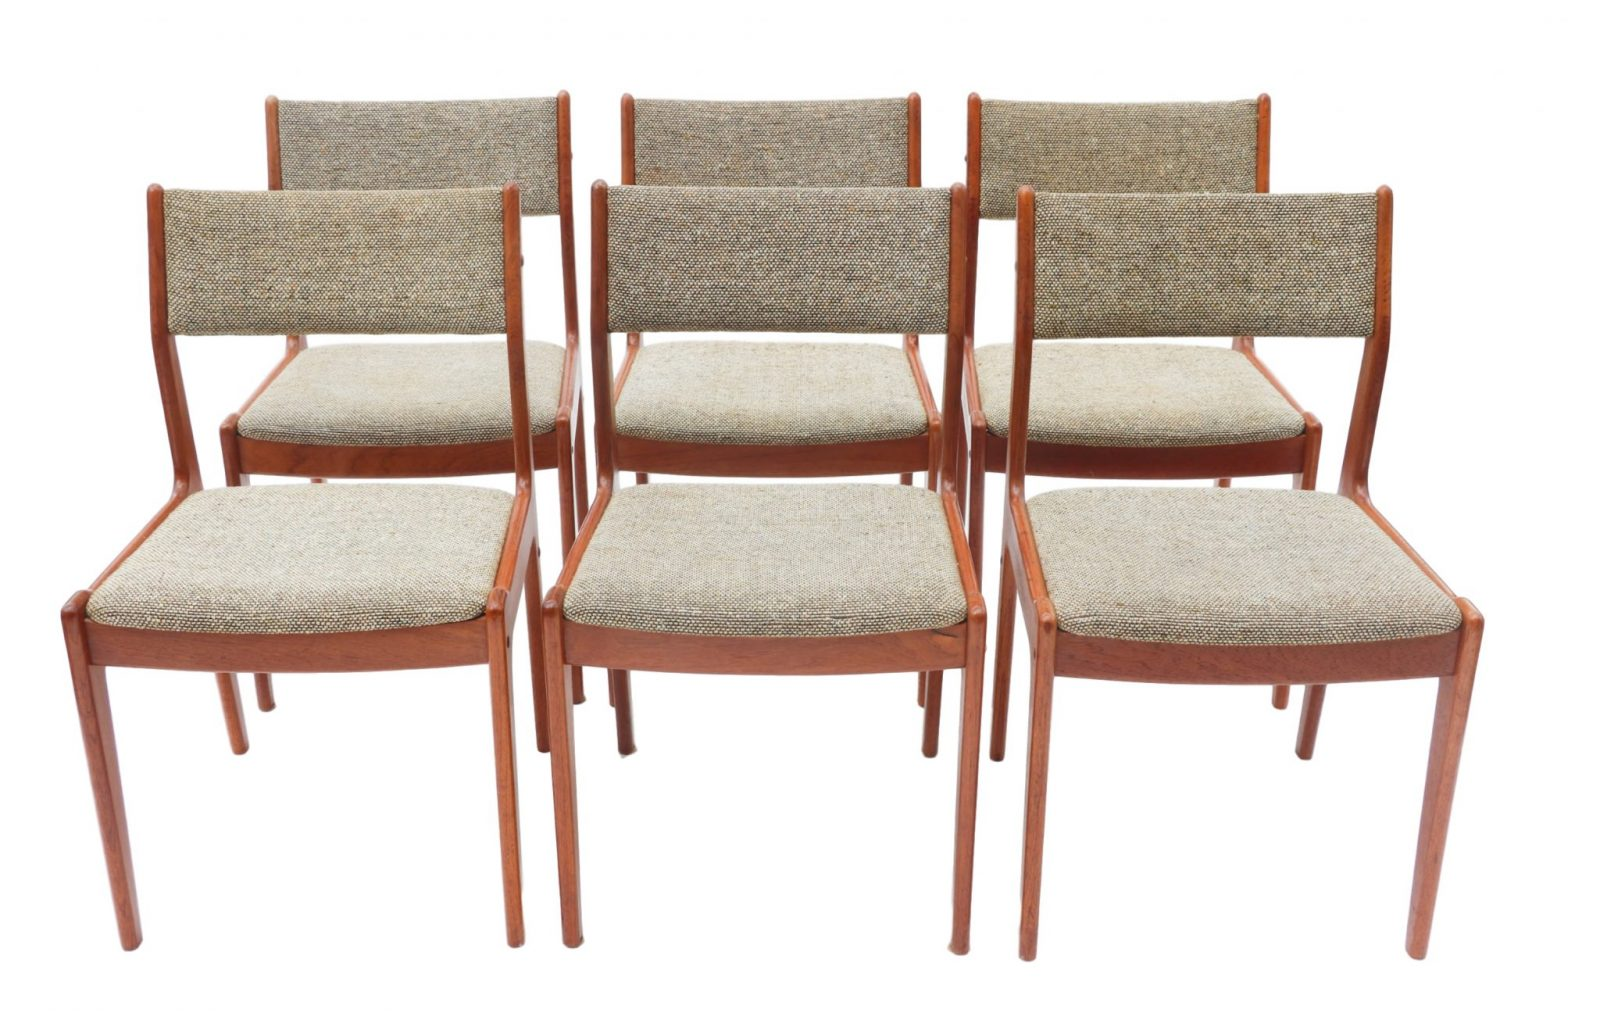 Danish Teak Dining Chairs Six Scandinavian Teak Danish Dining Chairs